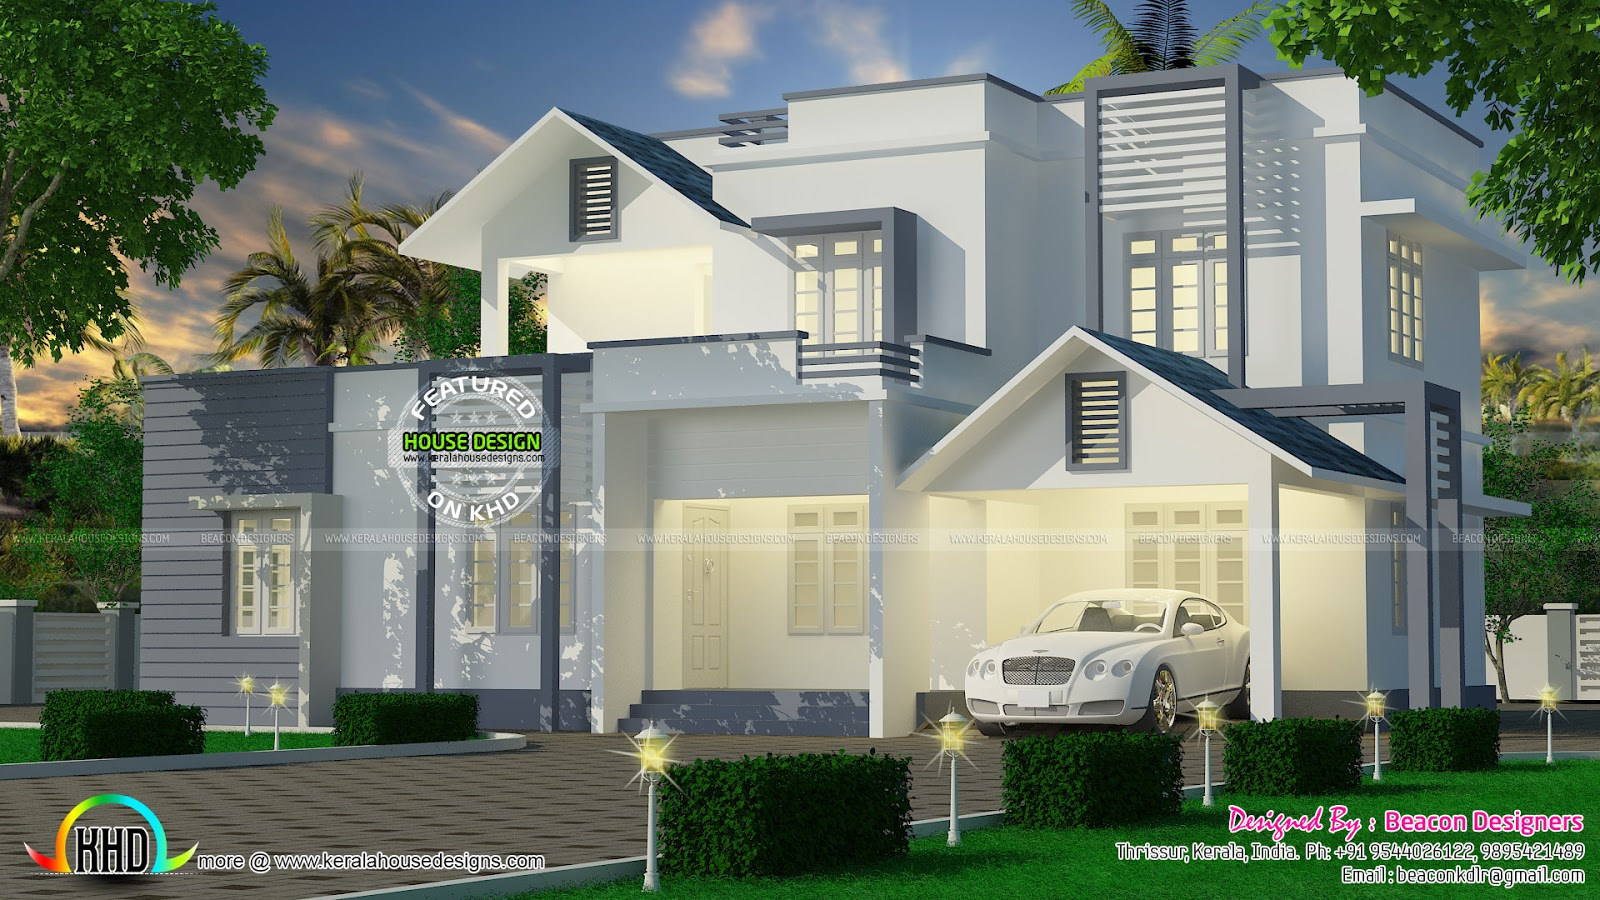 White and grey house design kerala home design and floor - Grey and white house ...